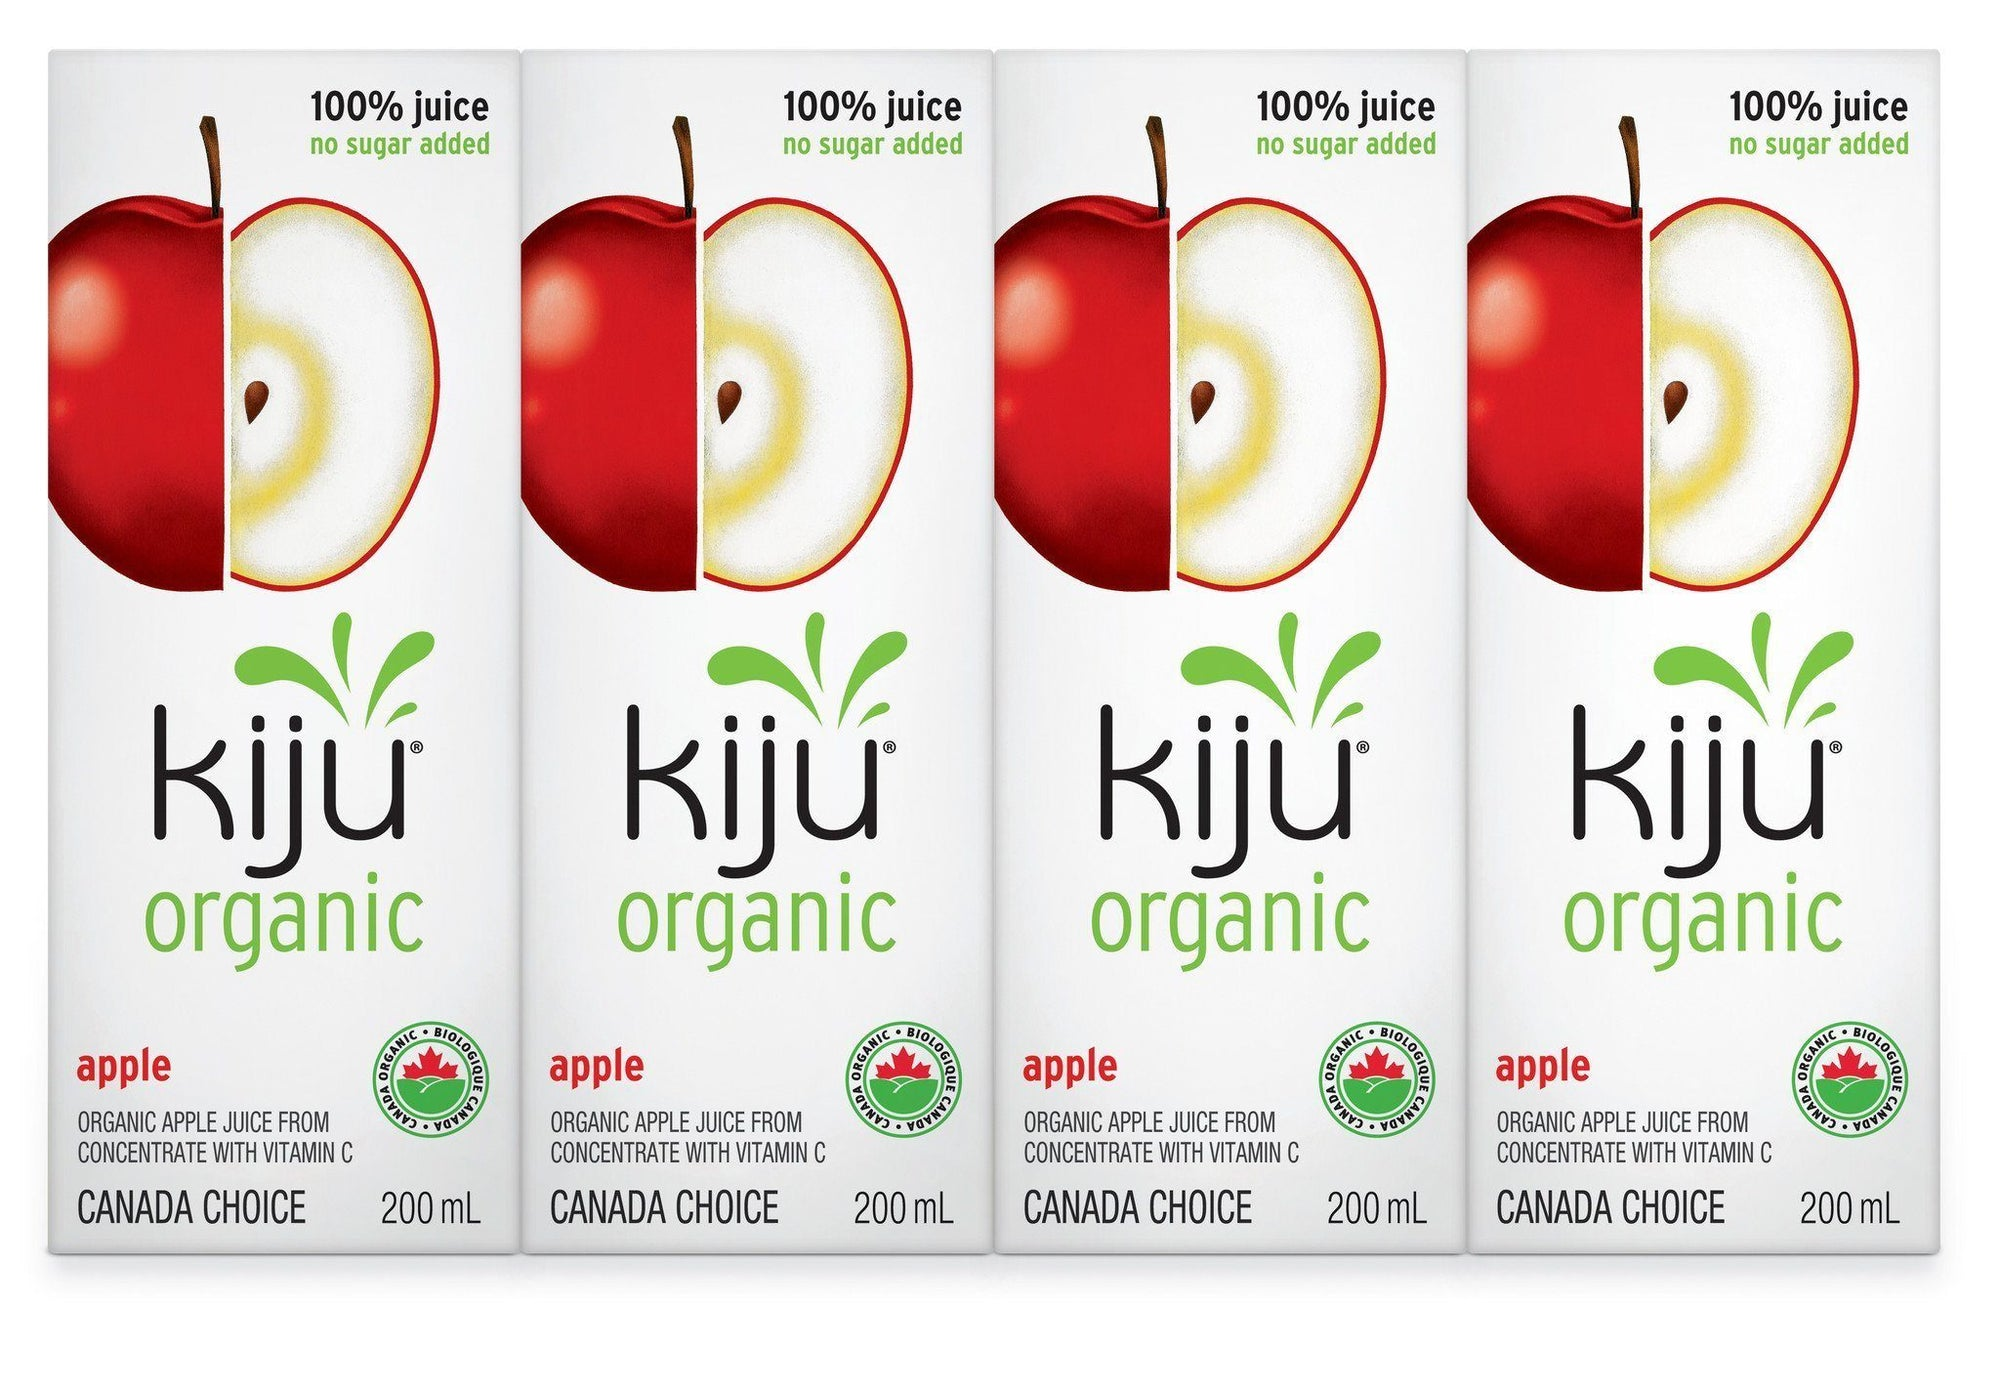 Food & Drink - Kiju - Organic Apple Juice,  200ml